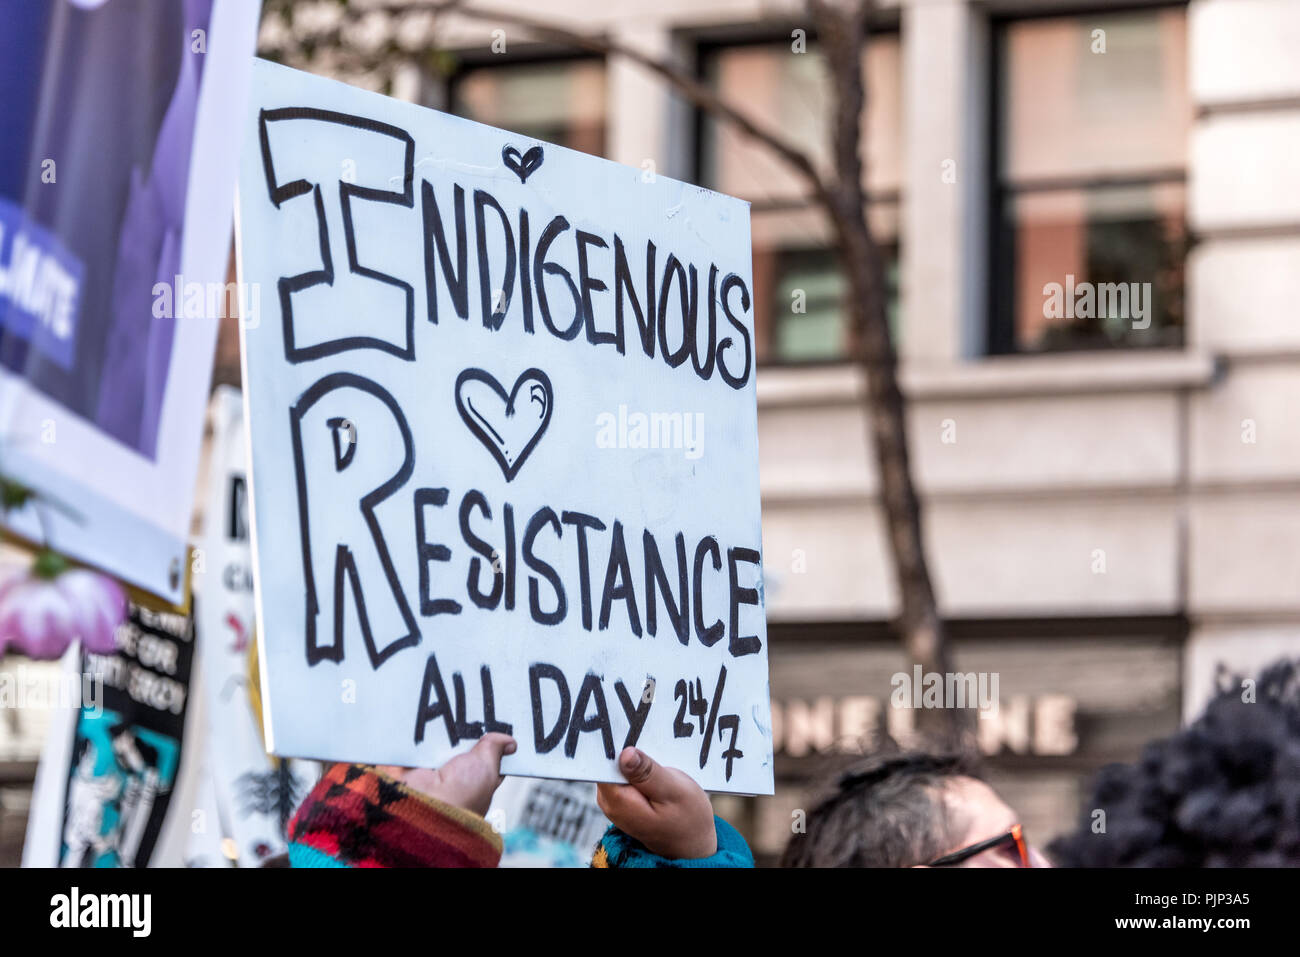 San Francisco, California, USA. 8th September, 2018. Thousands gather in San Francisco in Rise for Climate rally and march in advance of the Global Climate Action Summit to be held there September 12 to 14. A sign held above the crowd reads, 'Indigenous resistance all day 24/7.' Shelly Rivoli/Alamy Live News - Stock Image